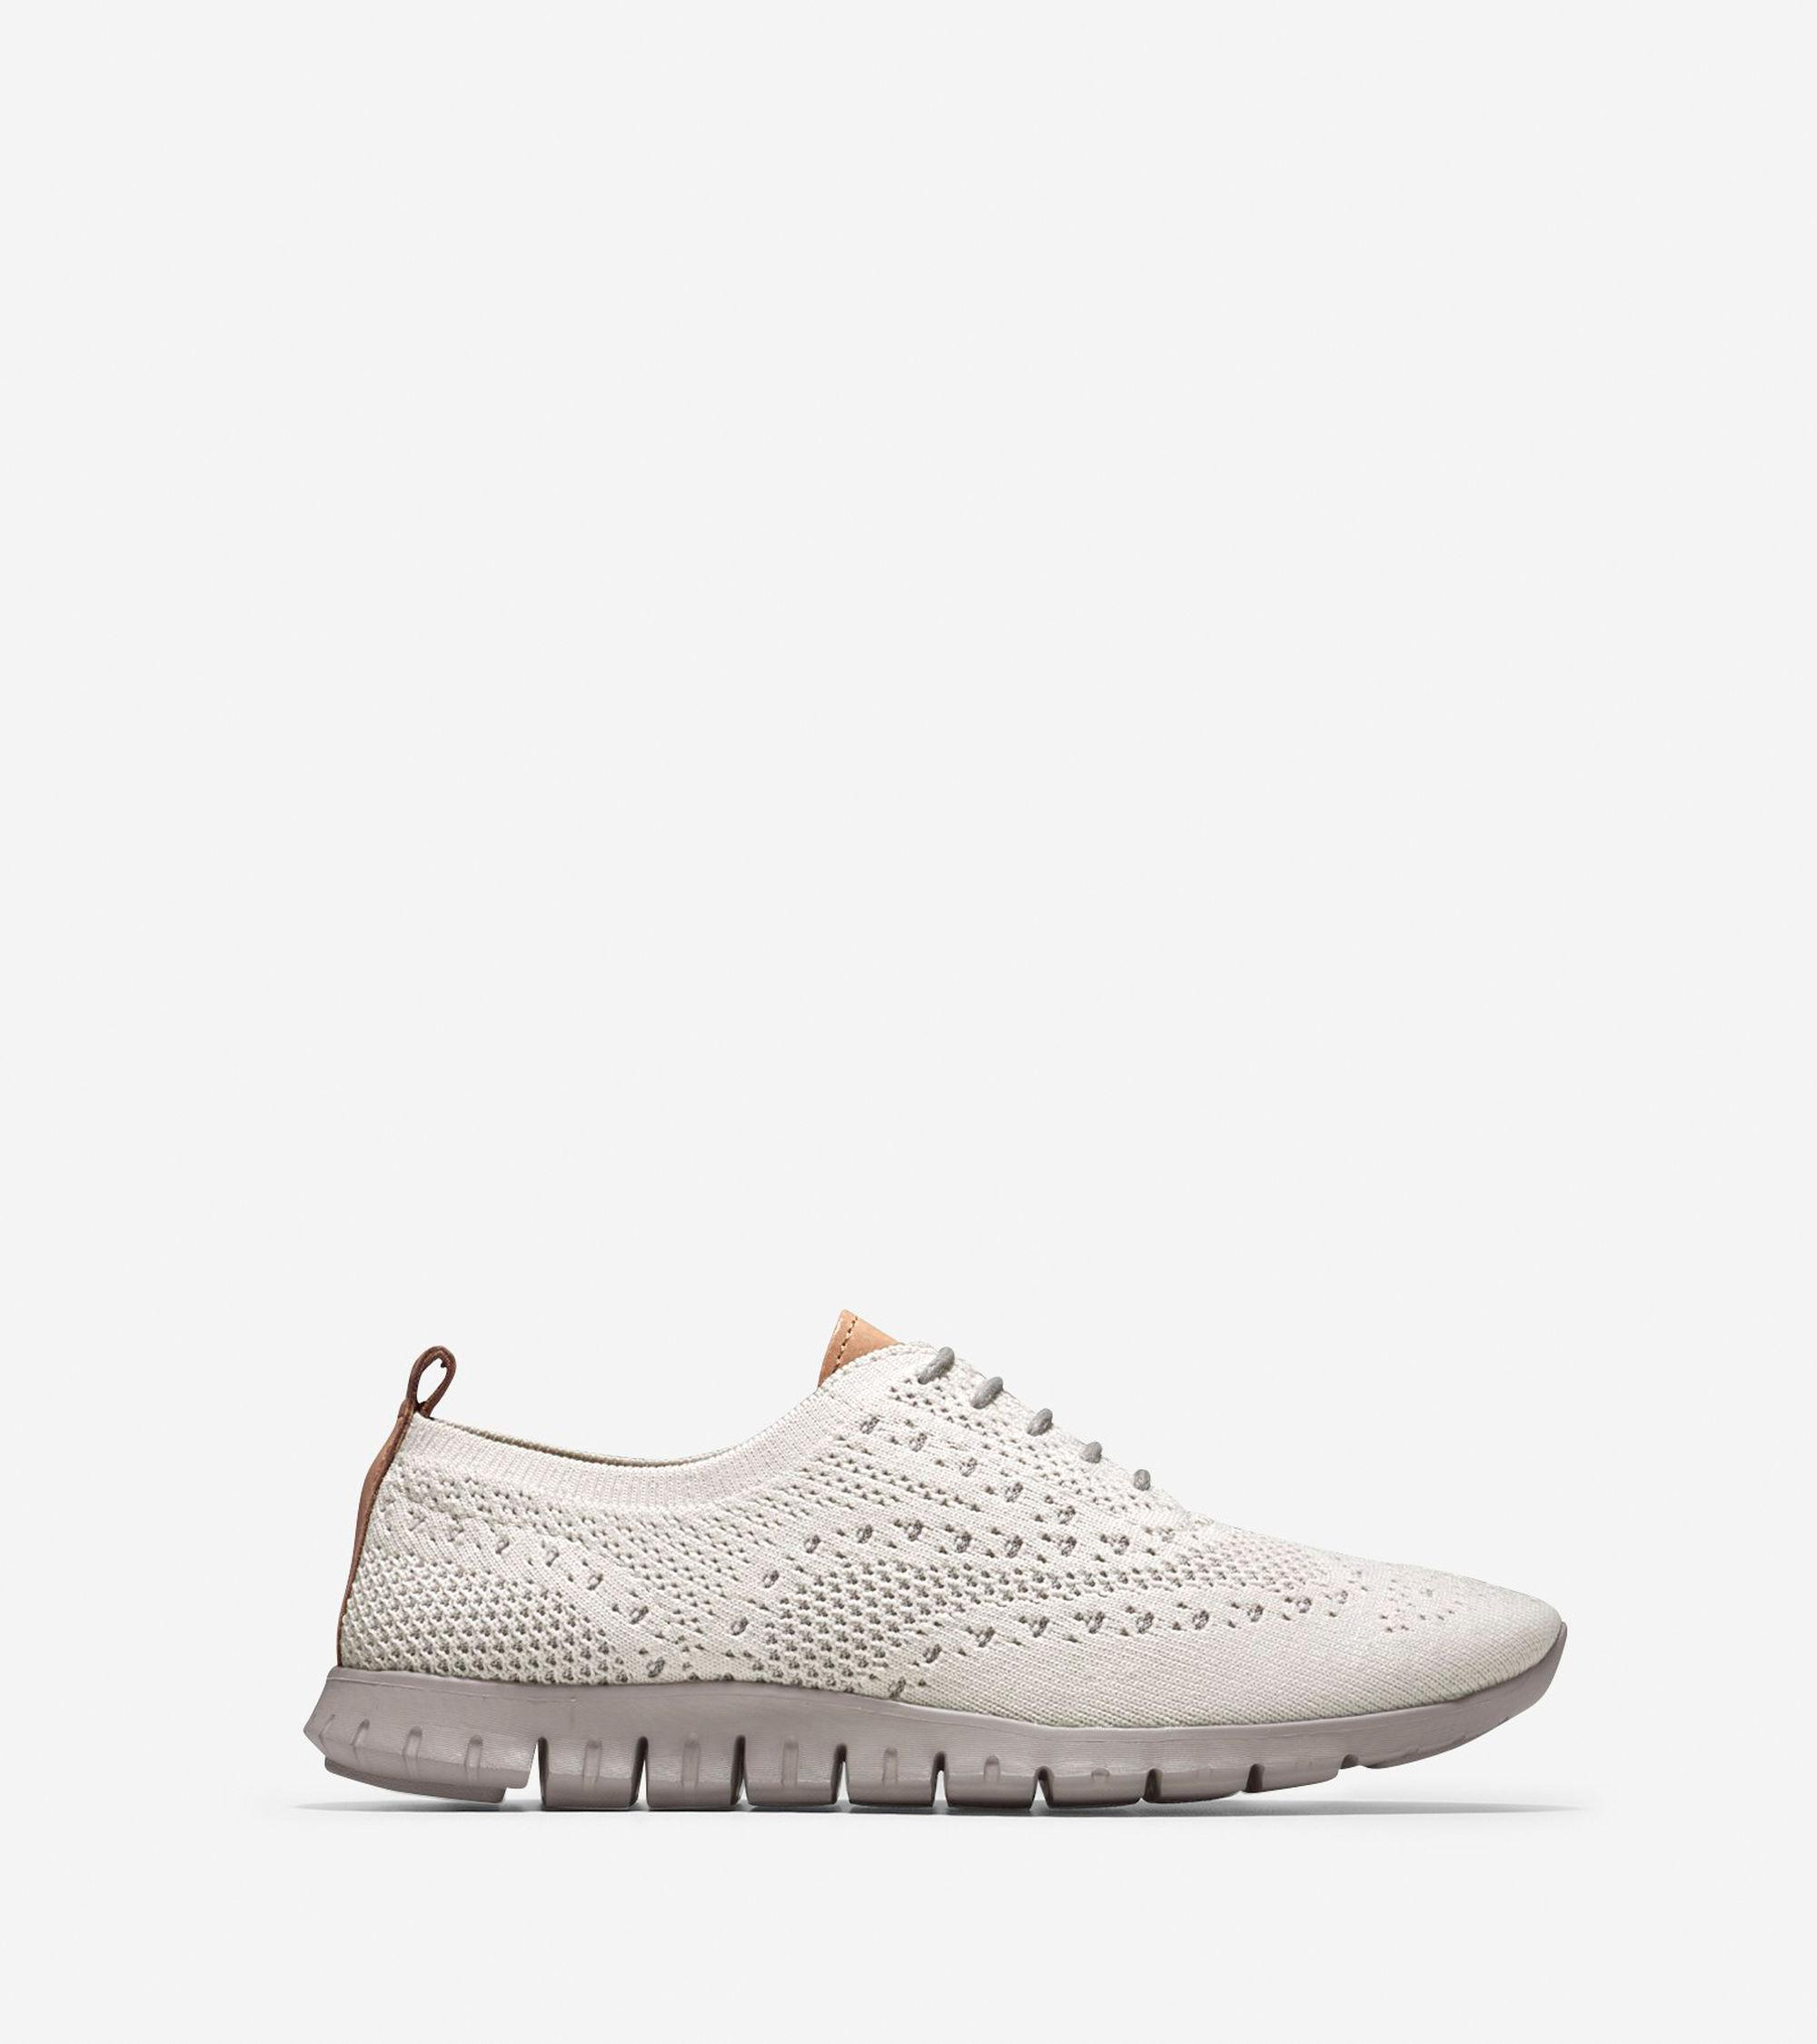 4918838451d Cole Haan Takes Flight with NYC Ballet Collaboration